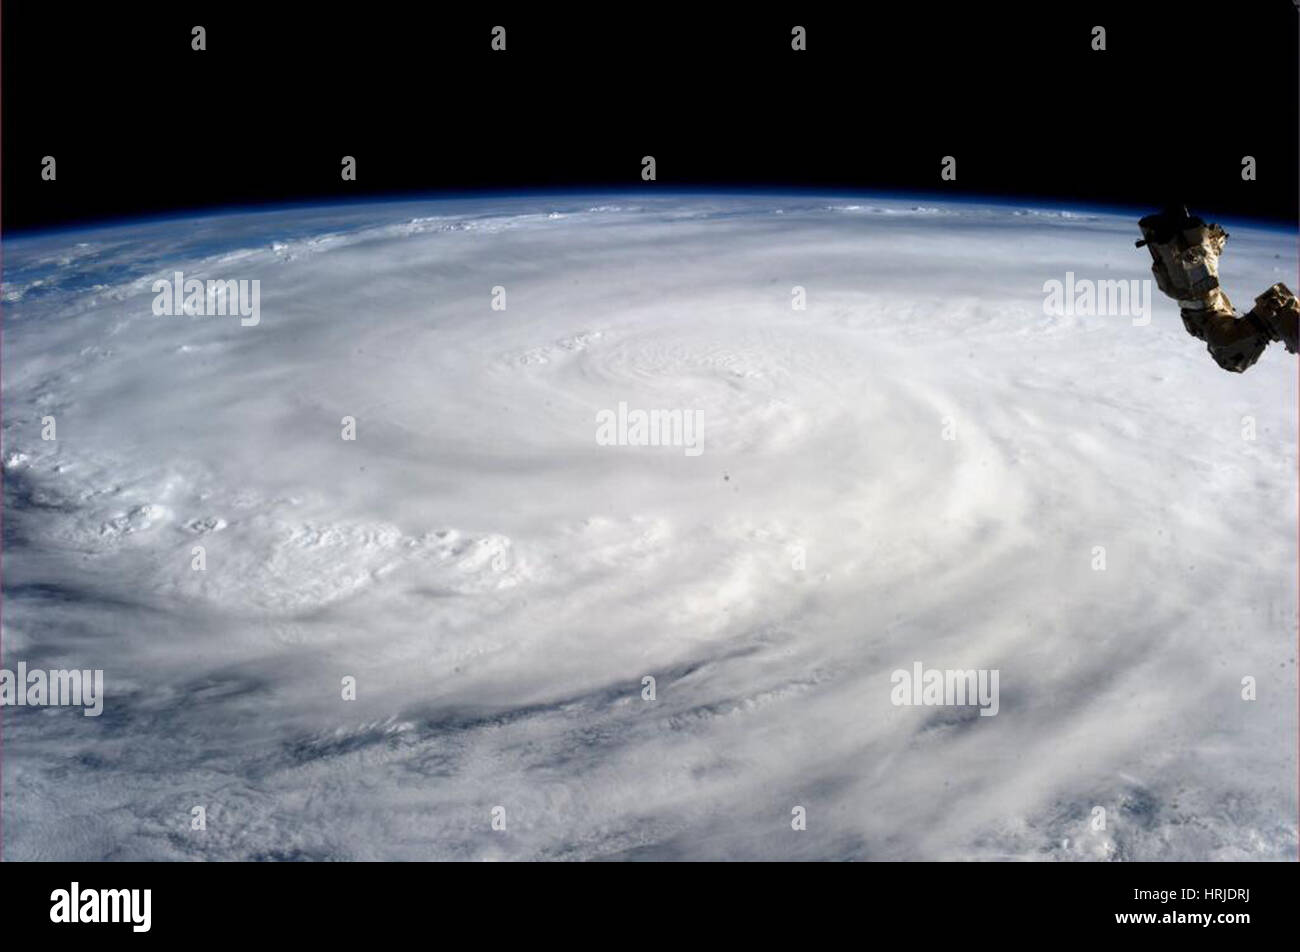 Typhoon Haiyan, ISS Photo, 2013 - Stock Image